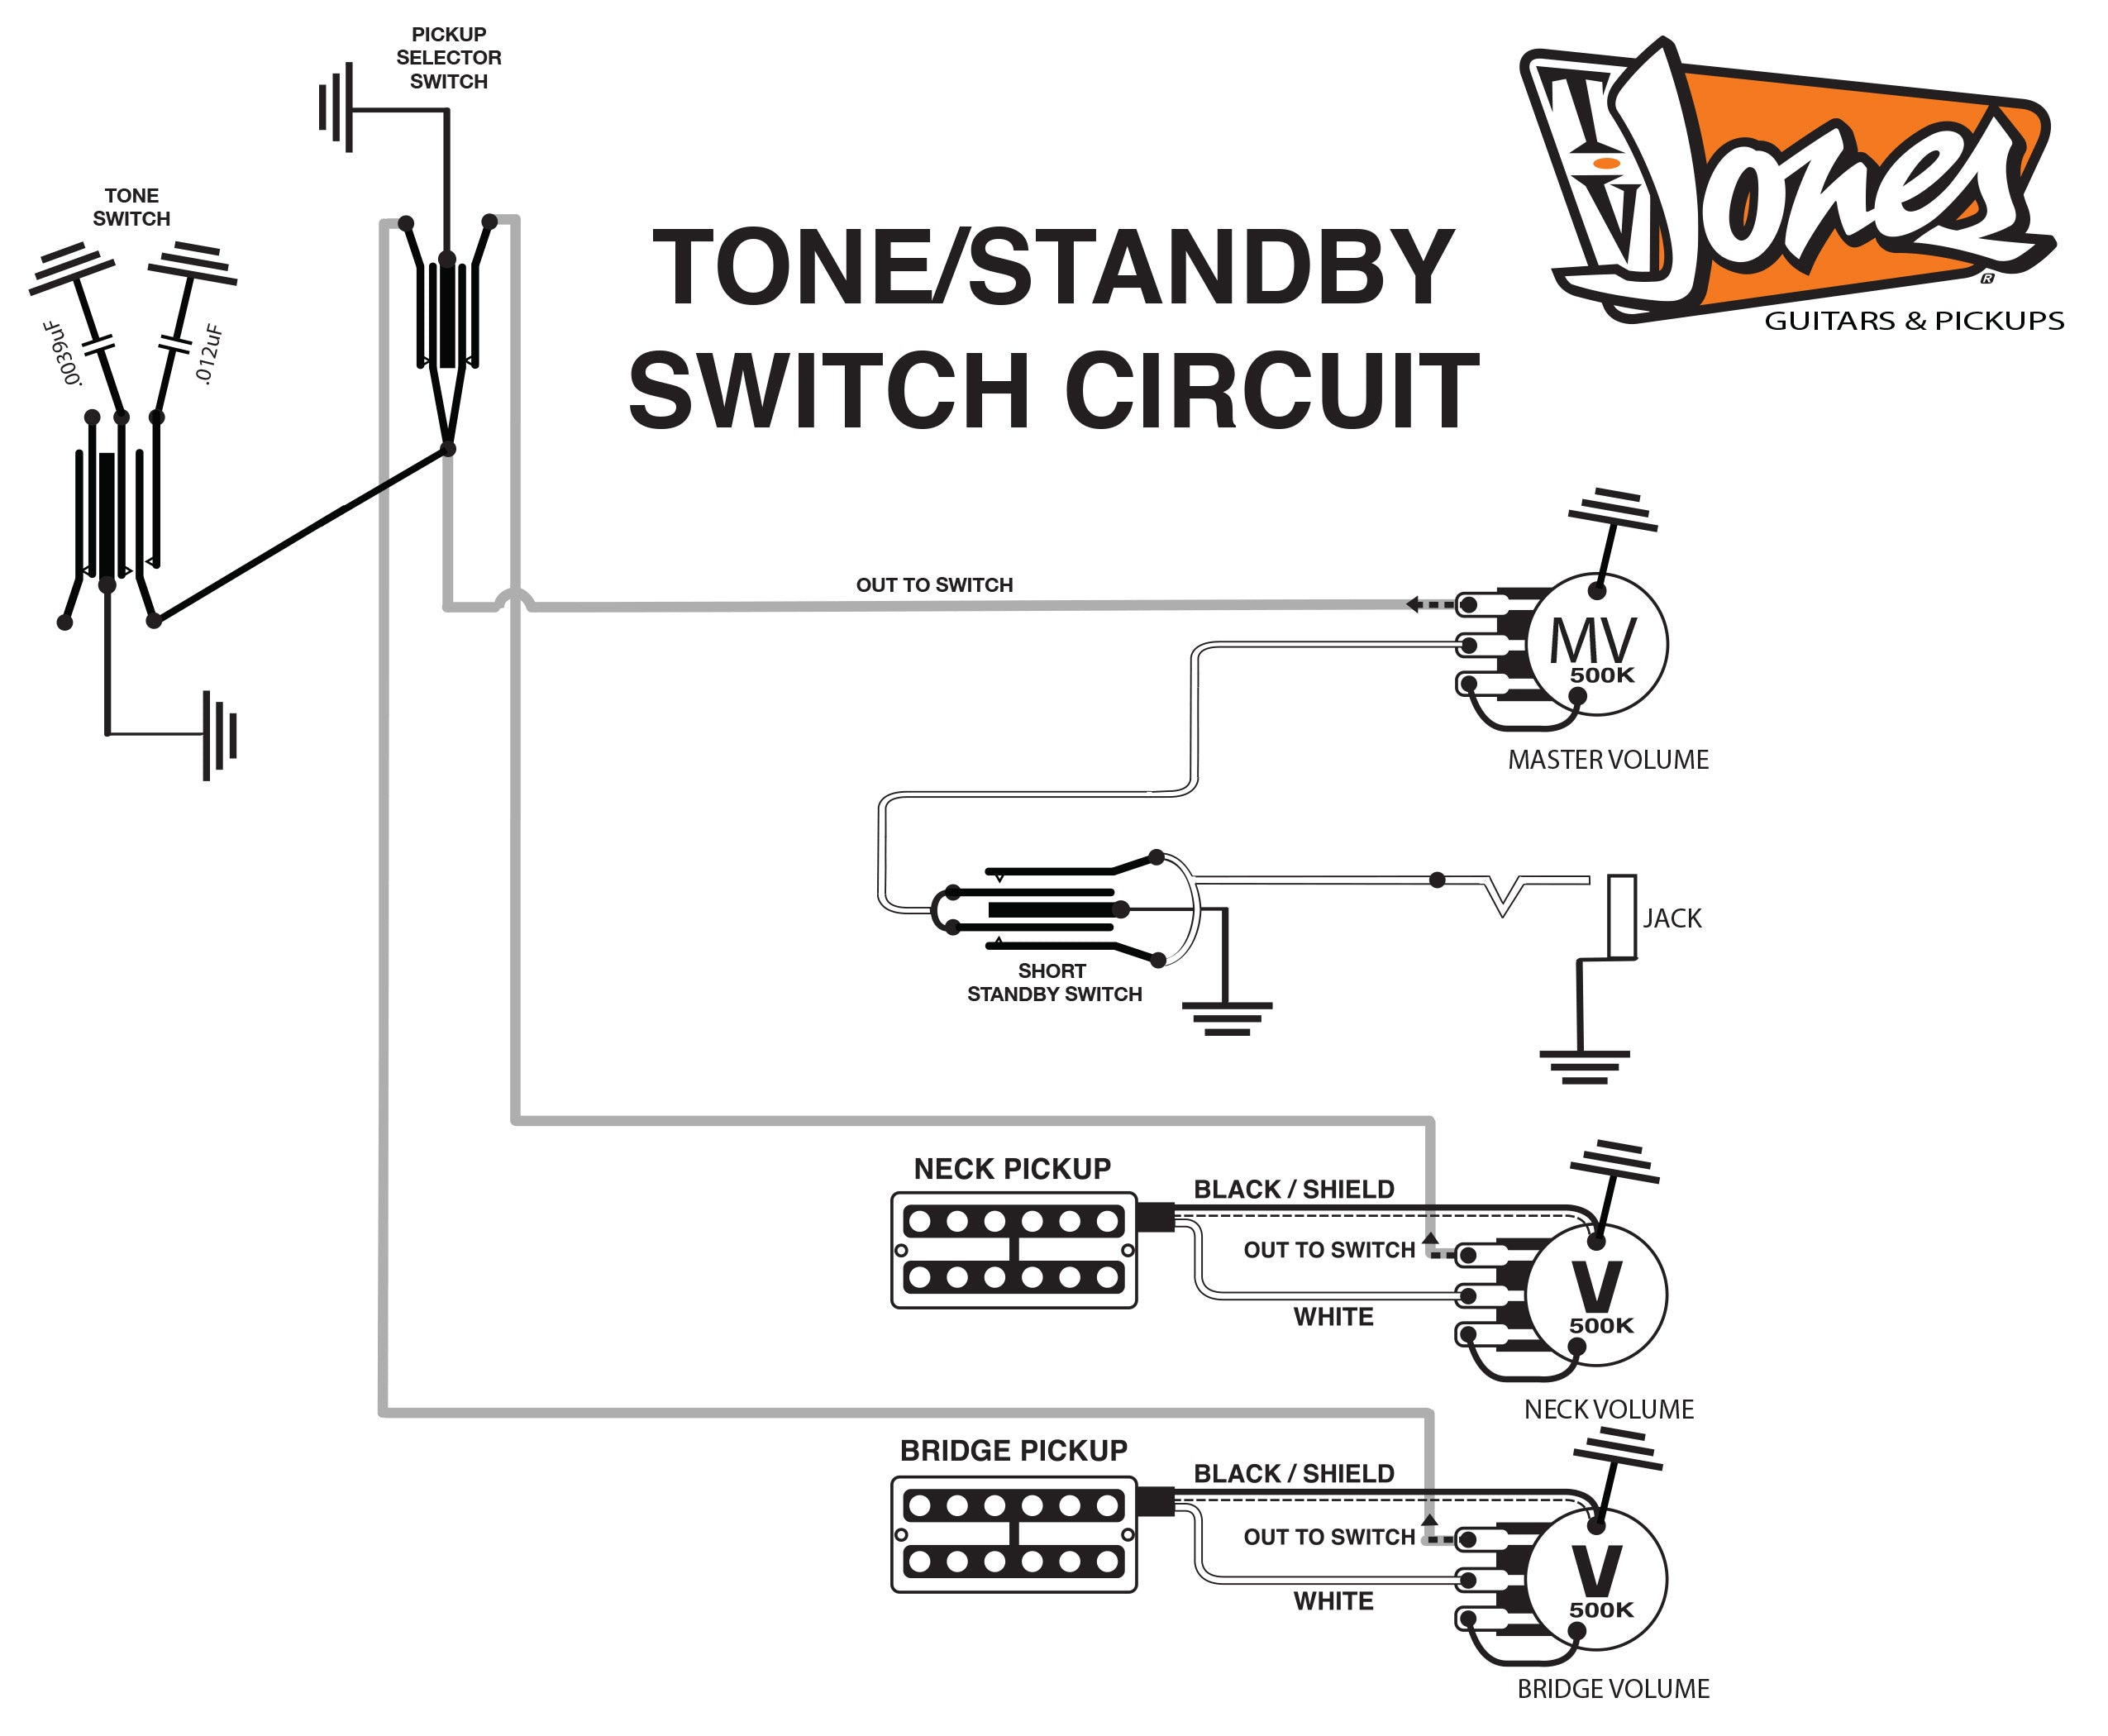 Tv Jones Product Dimensions Bridge Wiring Diagram Gretsch Guitar Schematics